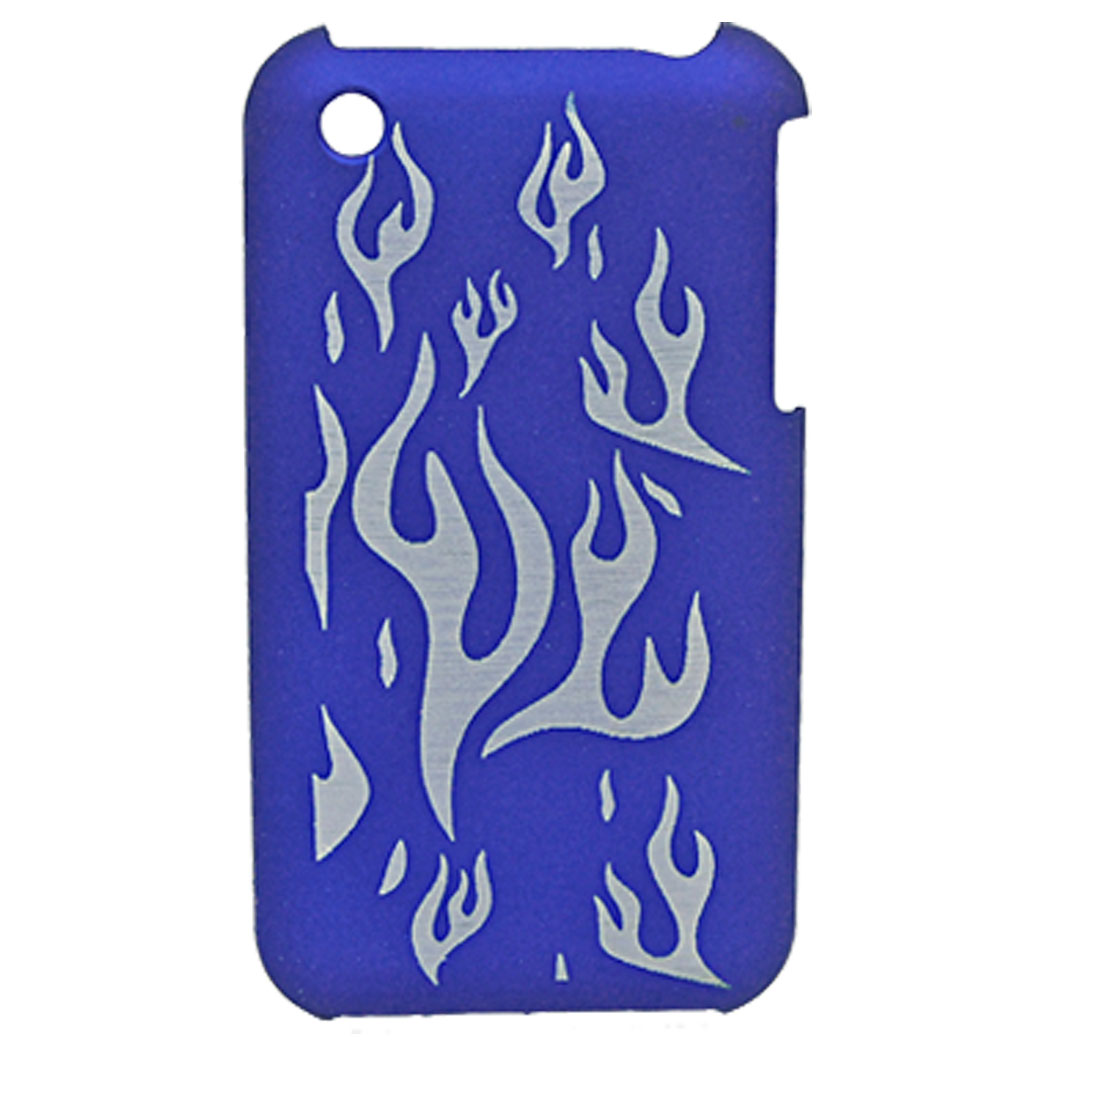 Carved Fire Blue Hard Back Skin Case Shield for iPhone 3G / 3GS